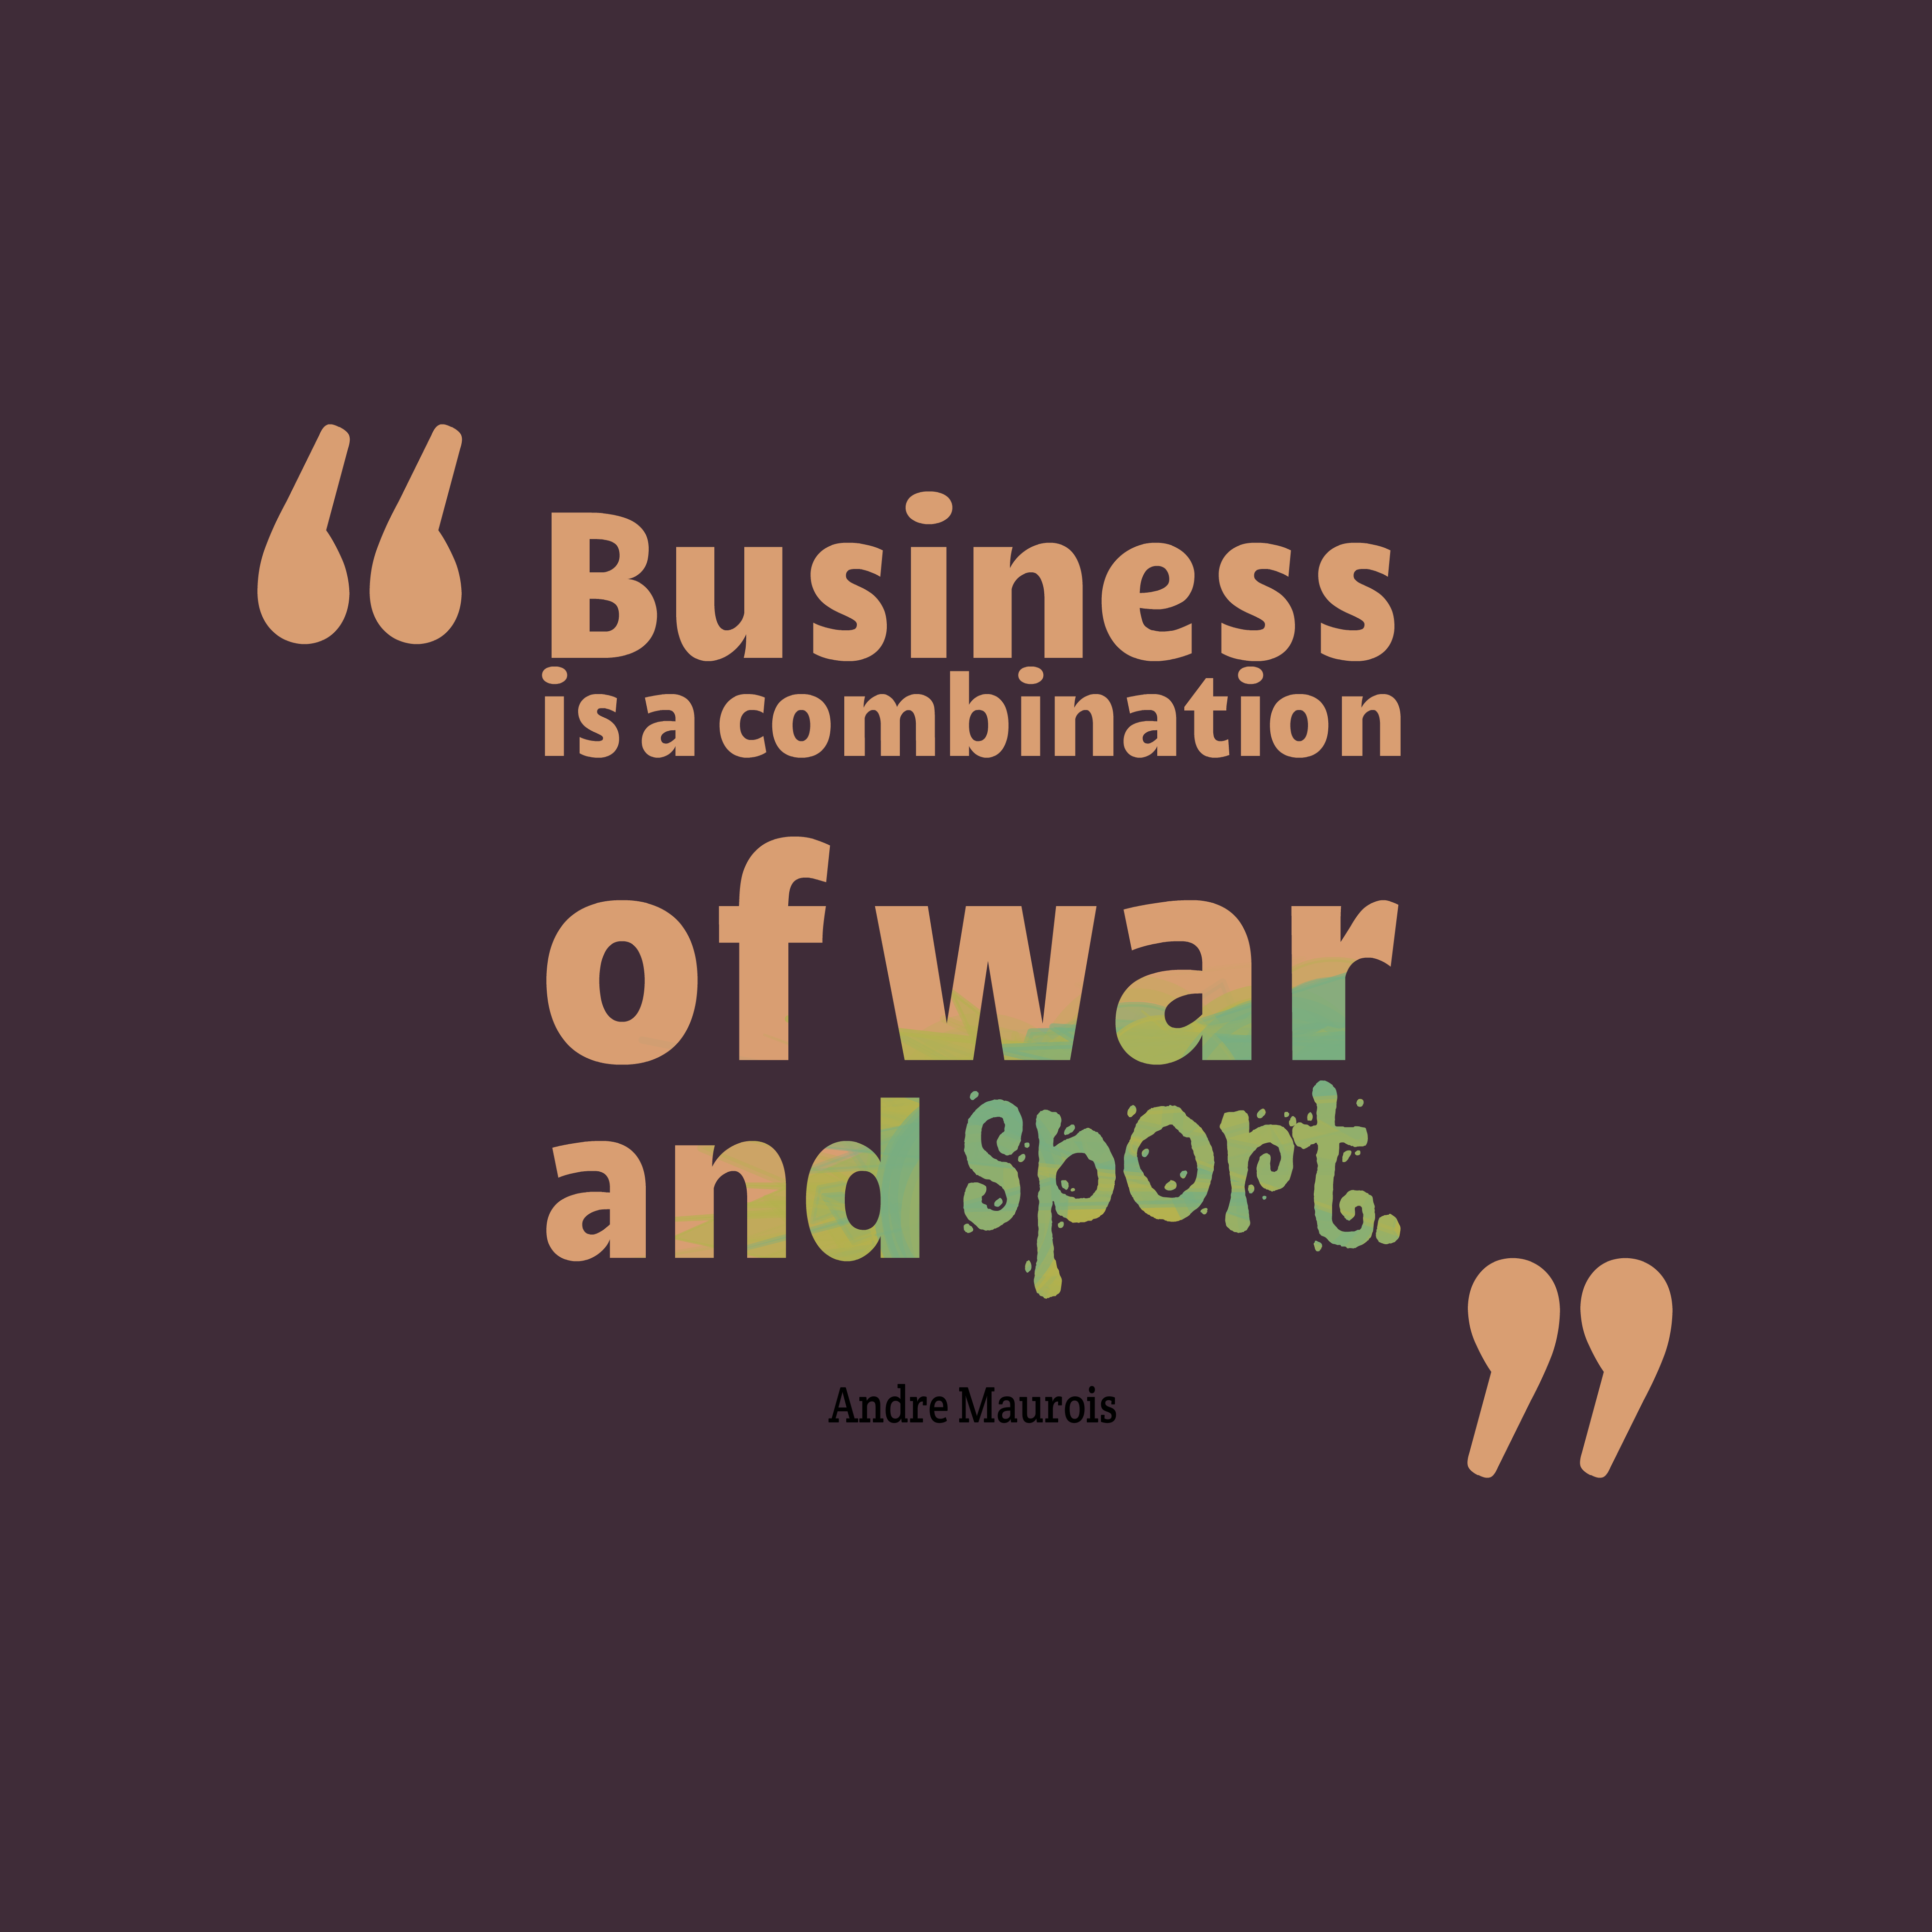 Best Business Quotes Of All Time Quotes on Business | The Best Quotes of All Time Best Business Quotes Of All Time